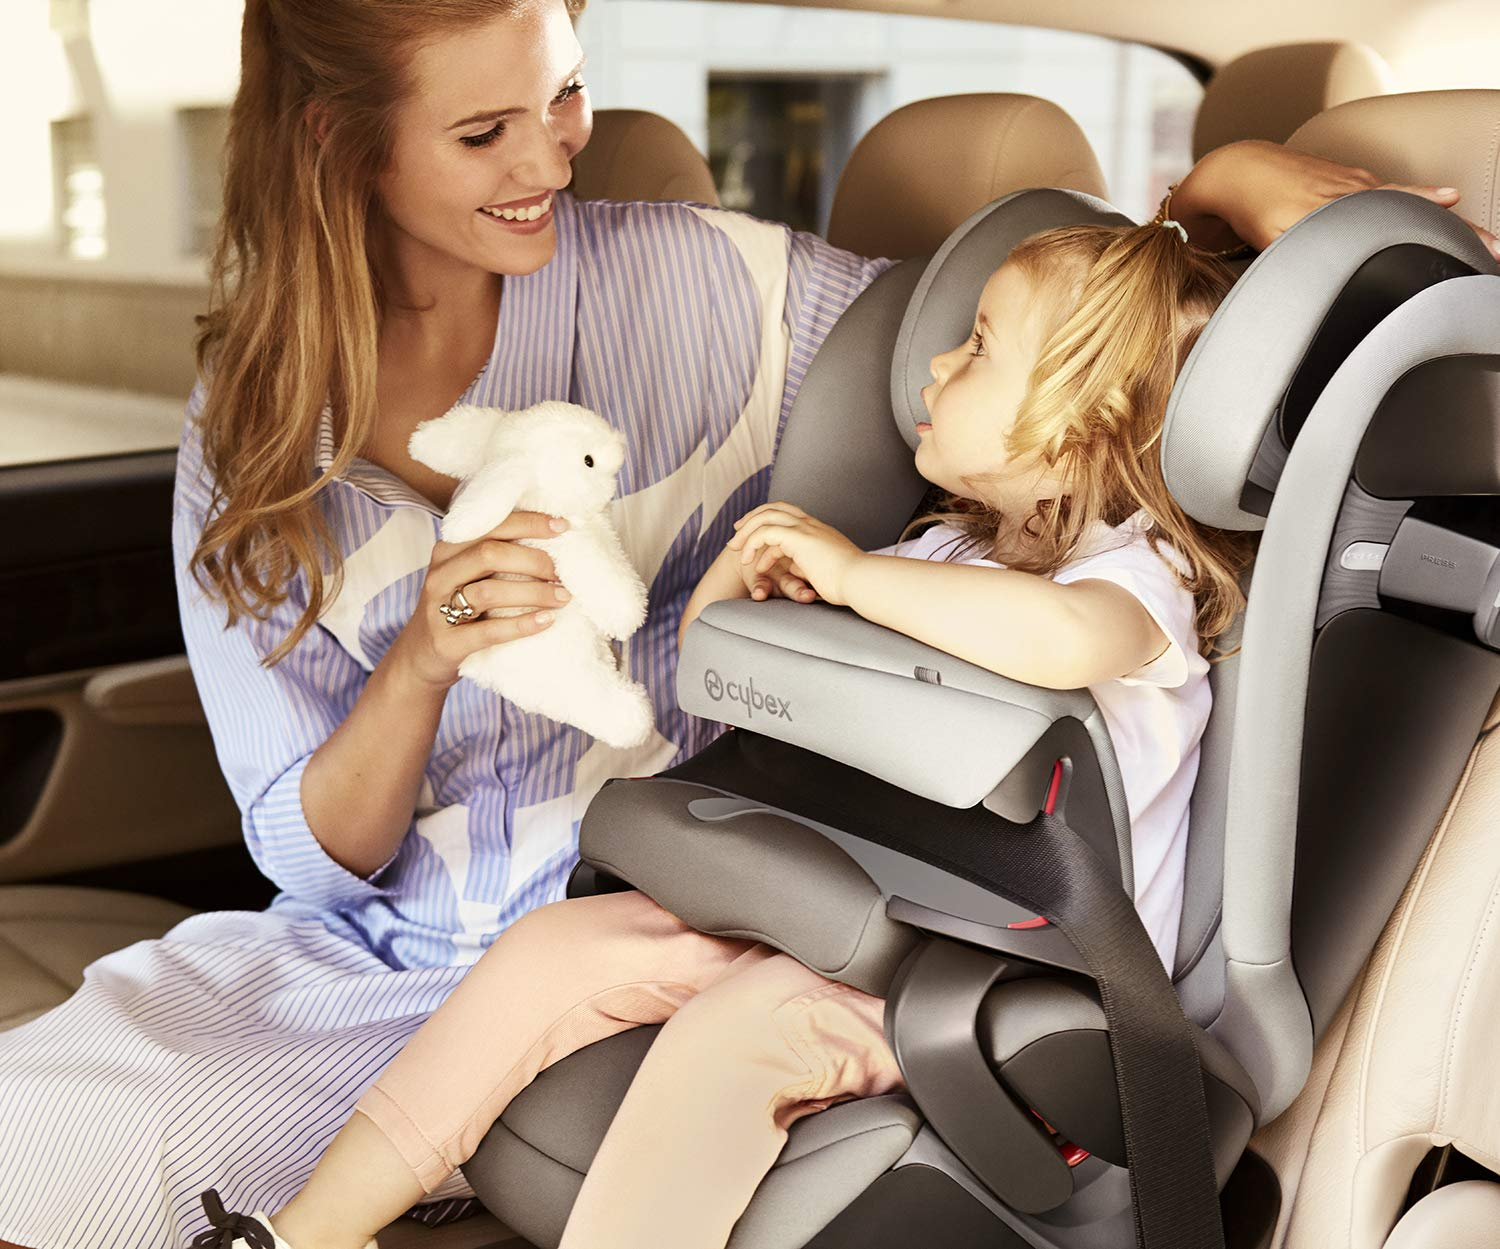 CYBEX Gold Pallas S-Fix 2-in-1 Child's Car Seat, For Cars with and without ISOFIX, Group 1/2/3 (9-36 kg), From approx. 9 Months to approx. 12 Years, Premium Black Cybex Sturdy and high-quality child car seat for long-term use - For children aged approx. 9 months to approx. 12 years (9-36 kg), Suitable for cars with and without ISOFIX Maximum safety - Depth-adjustable impact shield, 3-way adjustable reclining headrest, Built-in side impact protection (L.S.P. System), Energy-absorbing shell 12-way height-adjustable comfort headrest, One-hand adjustable reclining position, Easy conversion to Solution S-Fix car seat for children 3 years and older (group 2/3) by removing impact shield and base 10